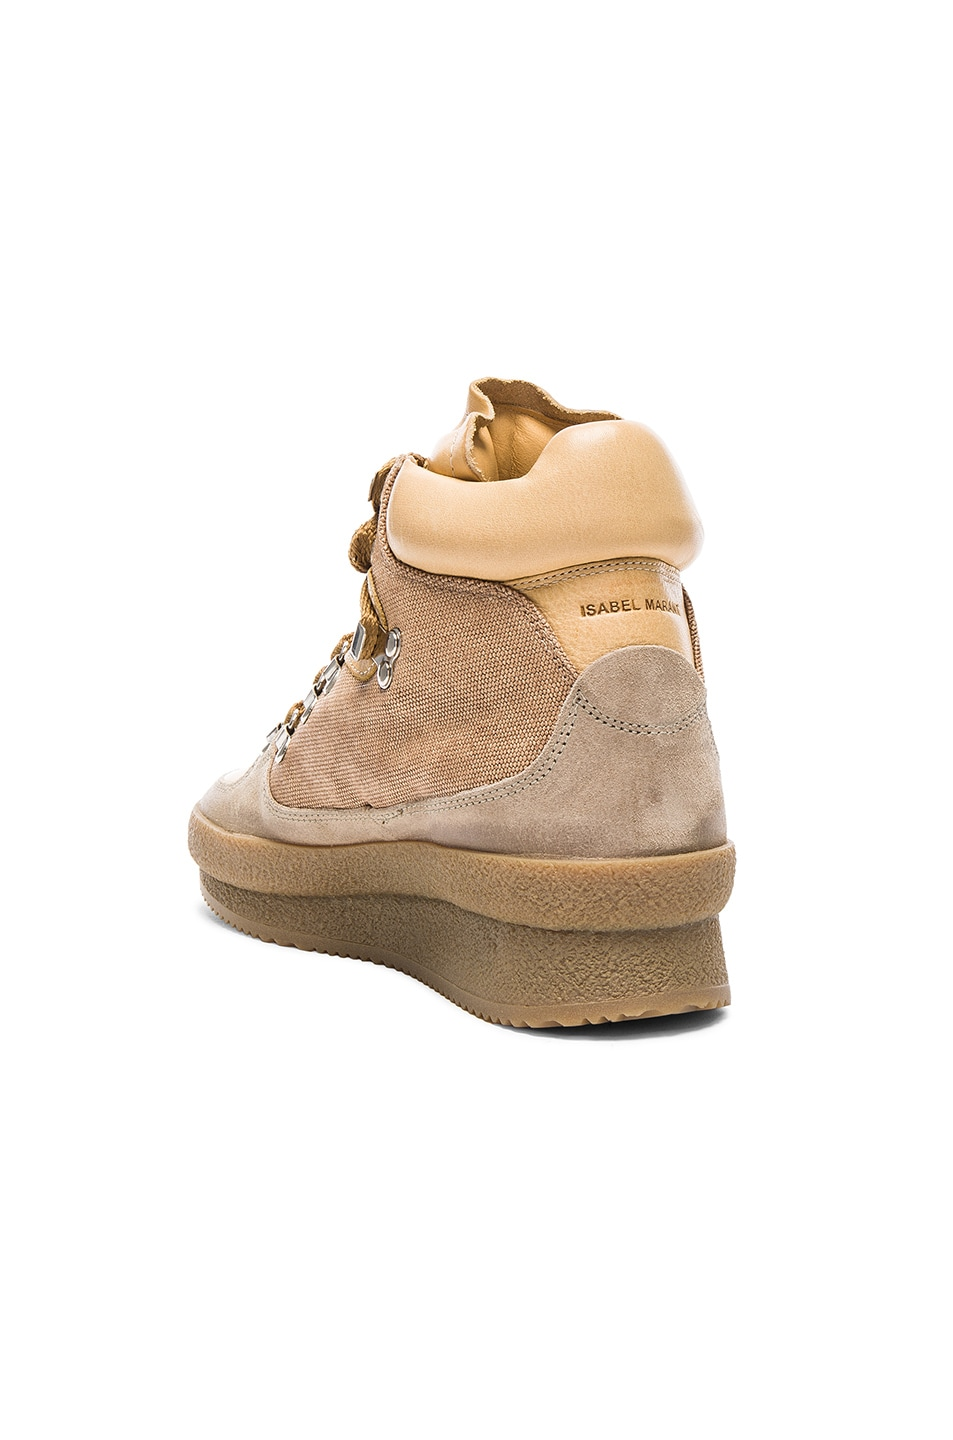 Image 3 of Isabel Marant Etoile Brent Hiking Boots in Beige